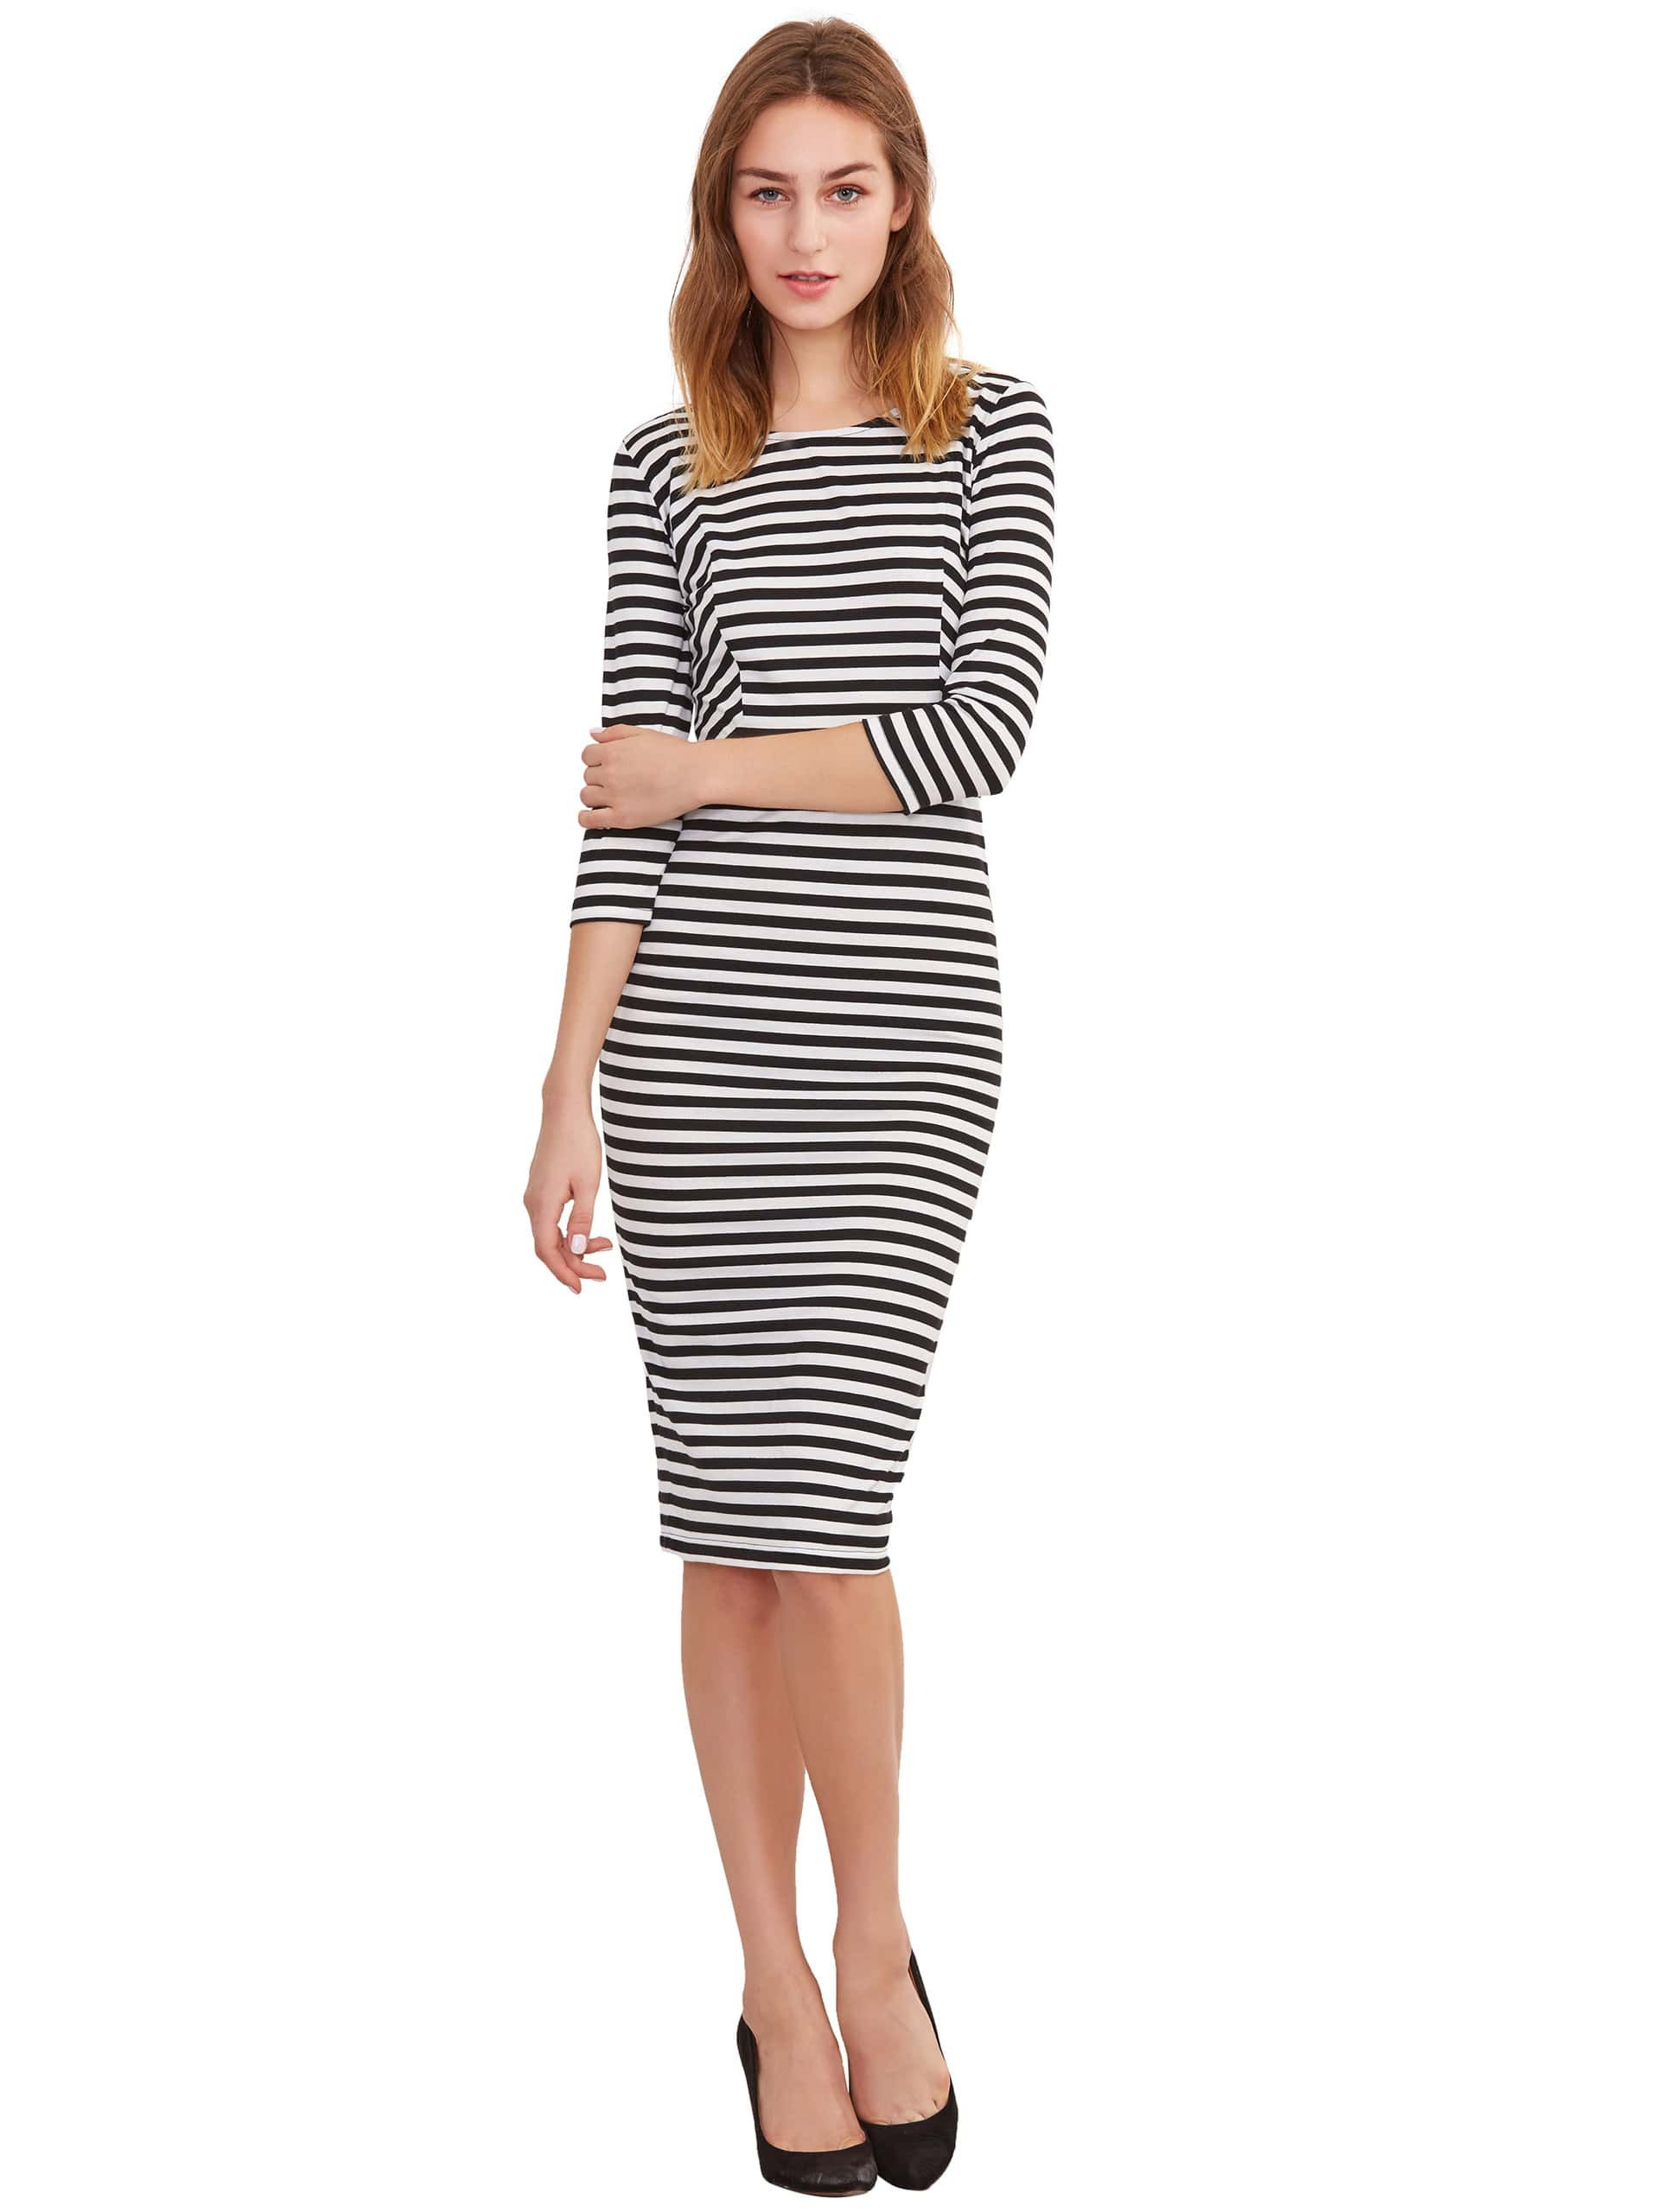 Elbow Sleeve Striped Sheath Dress dress160829556